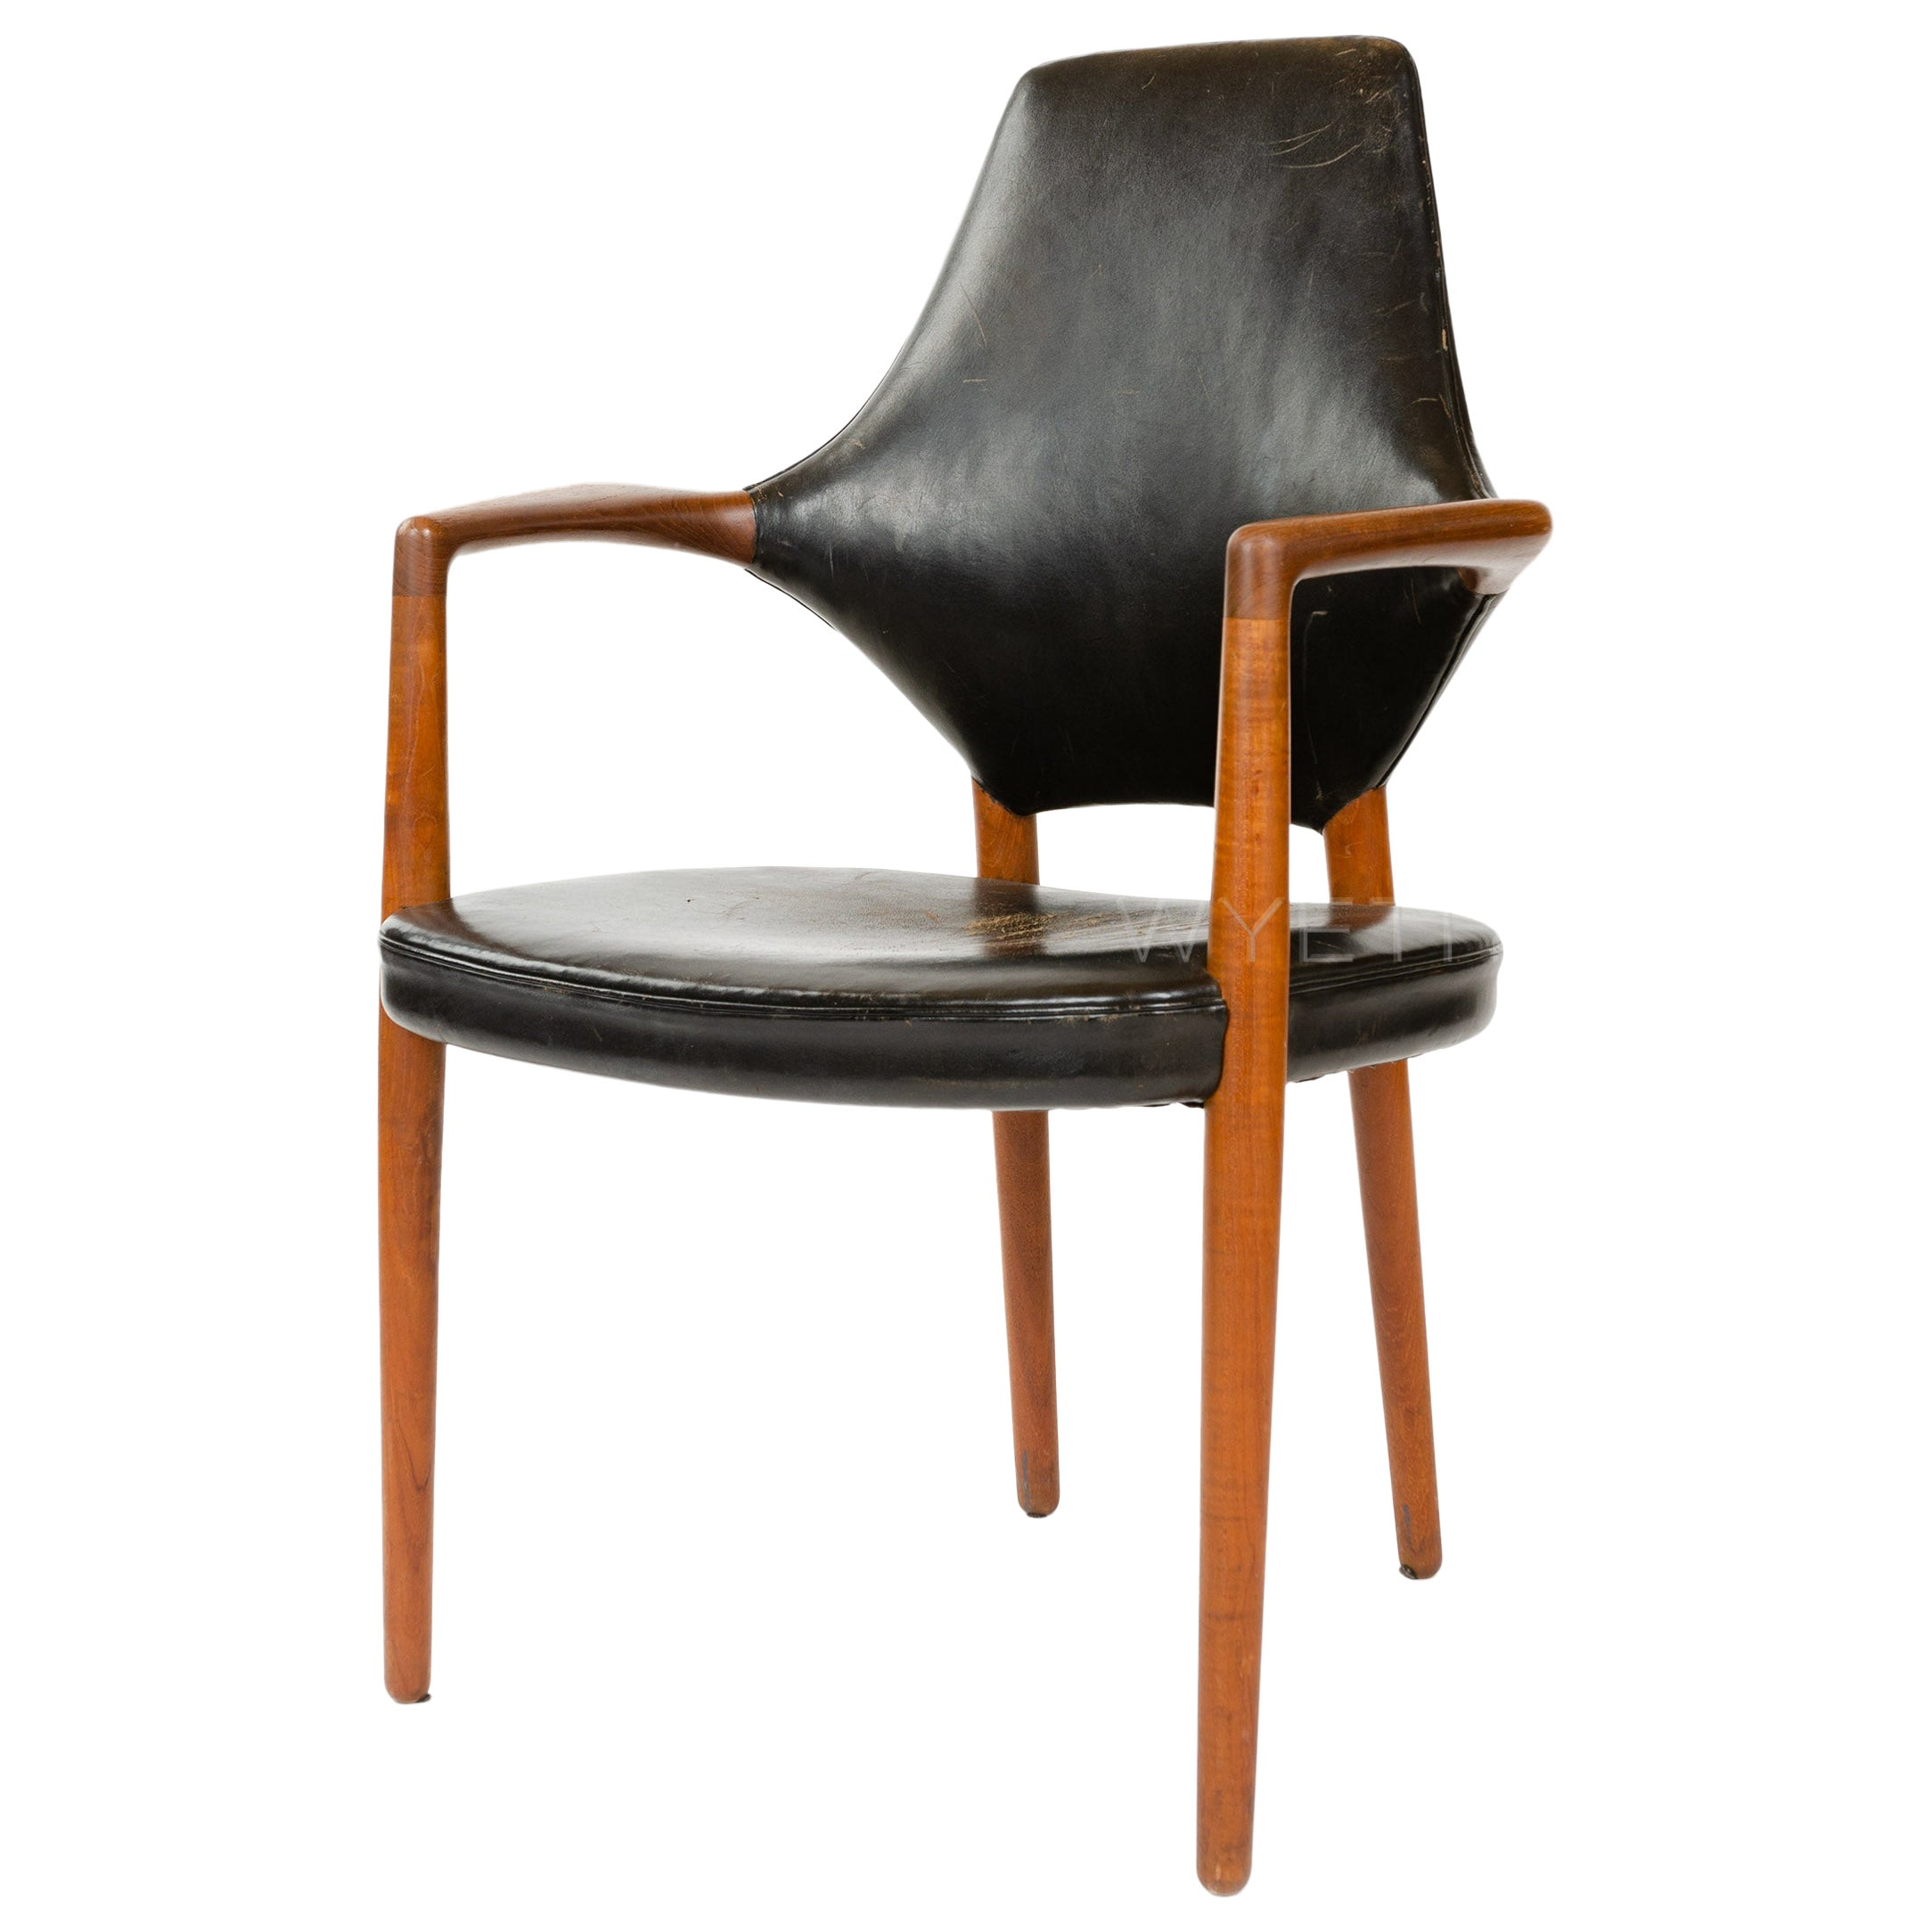 1950s Danish High Back Armchair / Dining Chair by Vestergaard Jensen